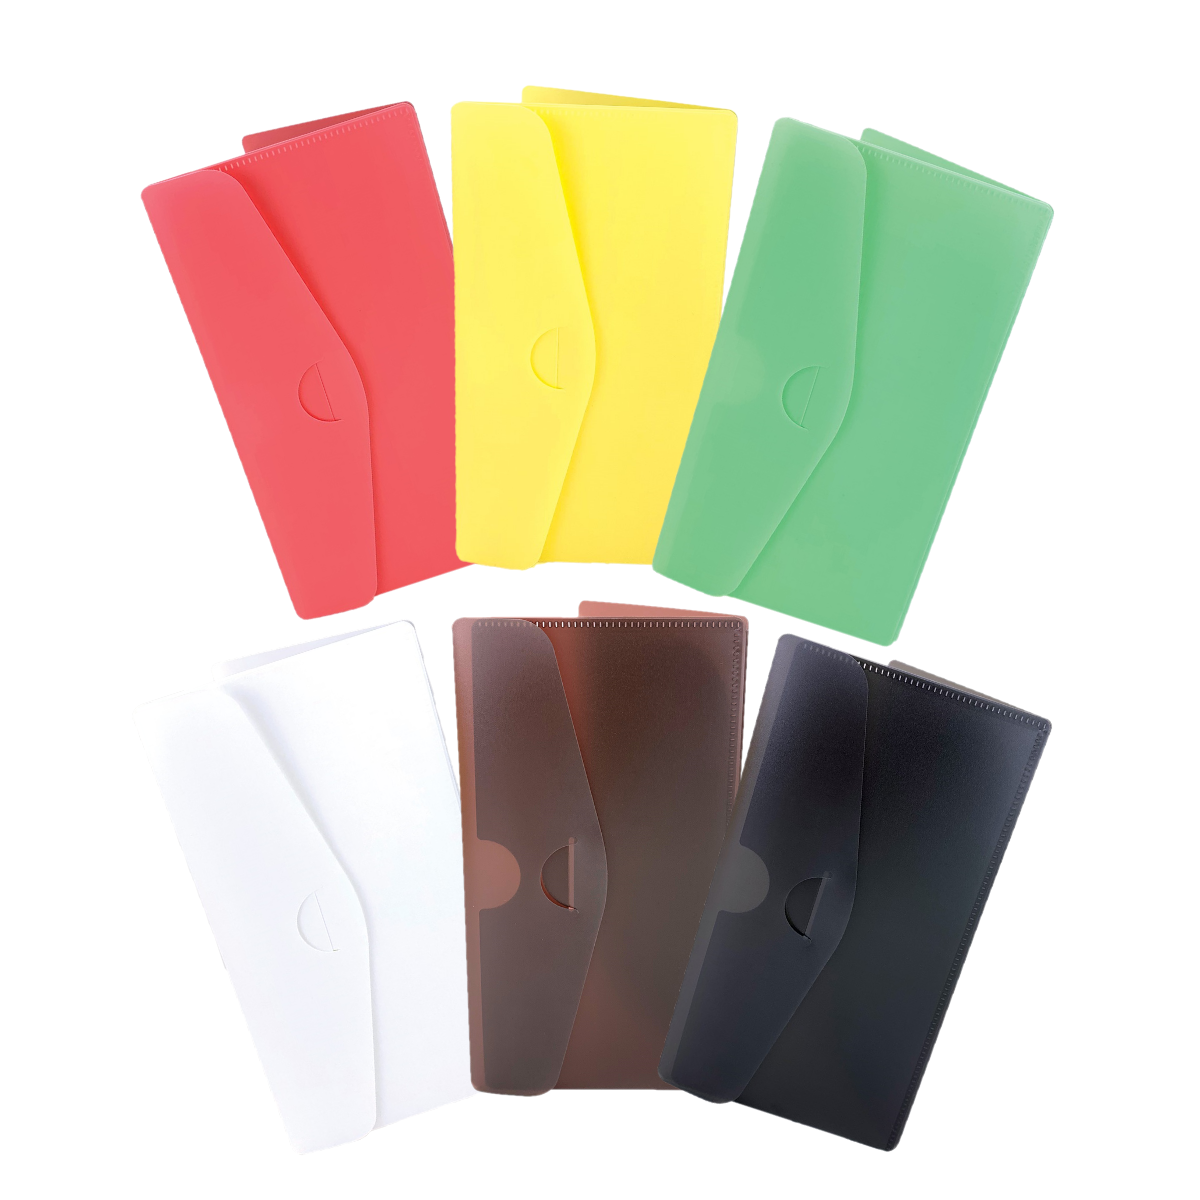 Anti-bacterial 3 Pocket Mask Case Organizer Keeper Folder Hong Kong Printing Company 抗菌3 分格口罩收納套 暫存夾 香港印刷公司